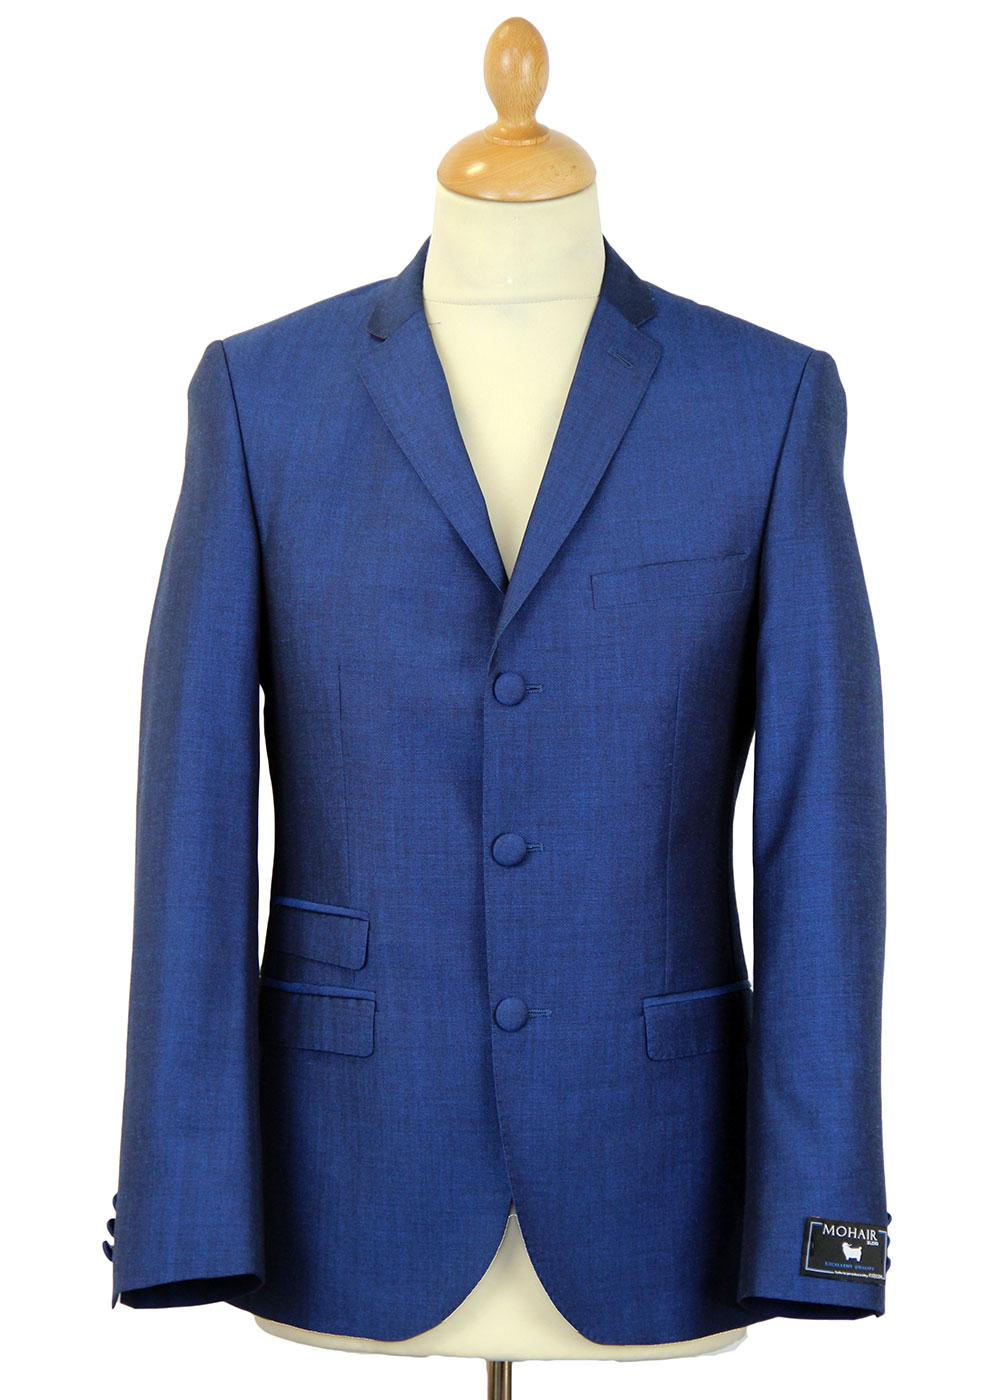 Blue Flame MADCAP Retro Mod Mohair Tonic Suit